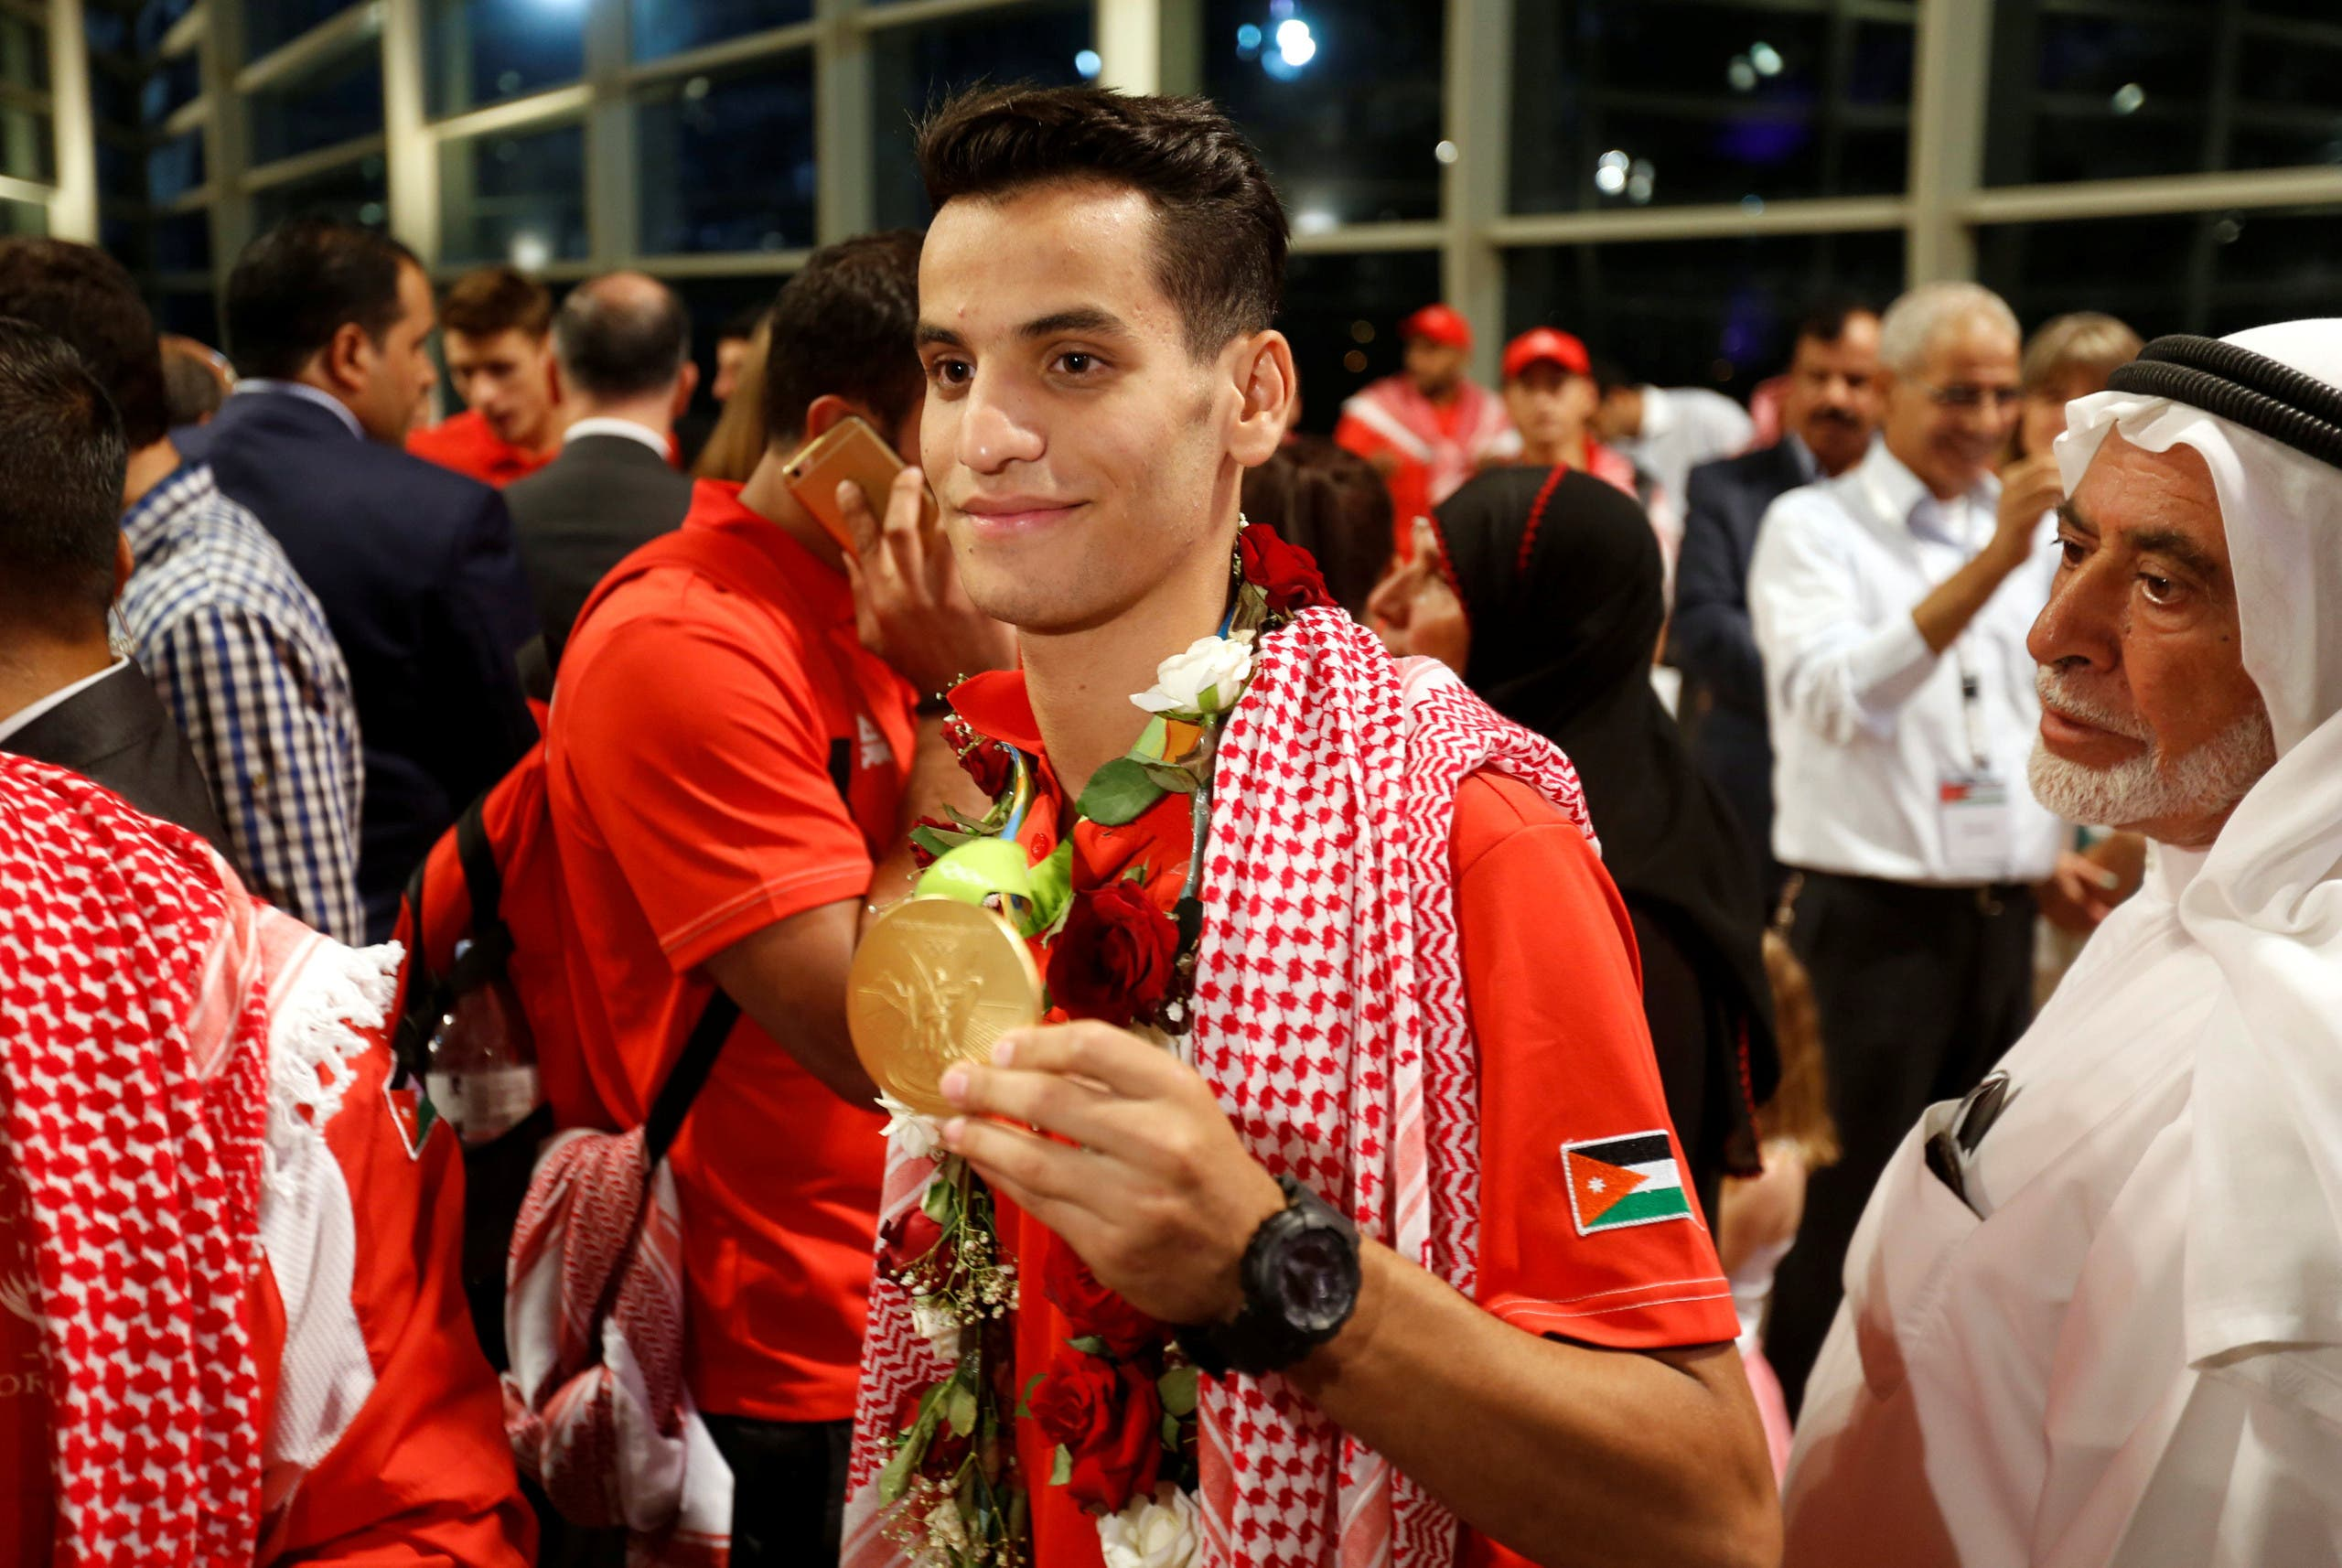 Ahmad Abughaush (C), who won a Taekwondo gold claiming Jordan's first ever Olympic medal, displays his medal for photographers upon his arrival at the Queen Alia International Airport in Amman, Jordan, August 23, 2016. REUTERS